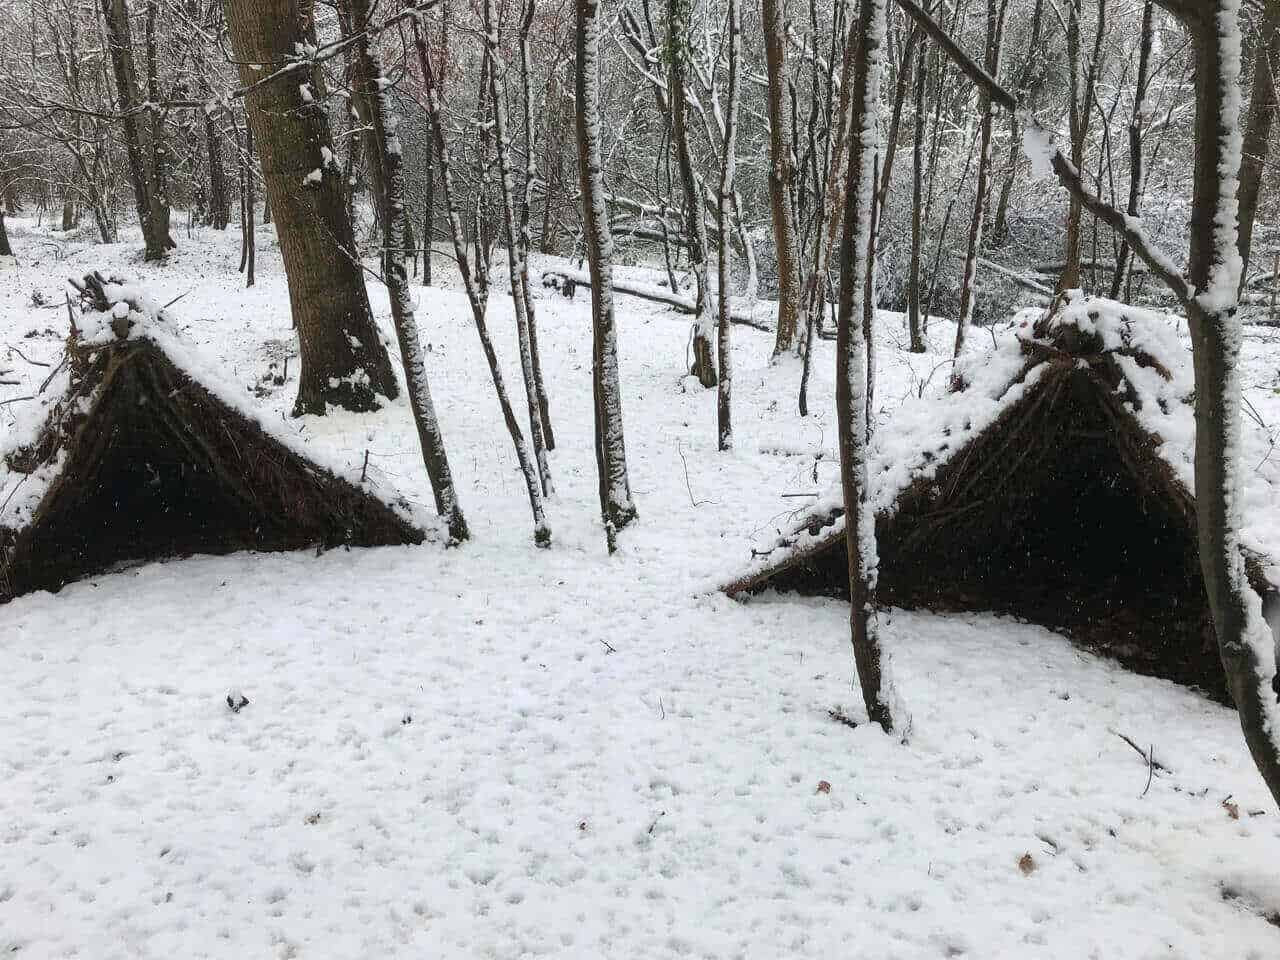 A couple of winter bushcraft shelters